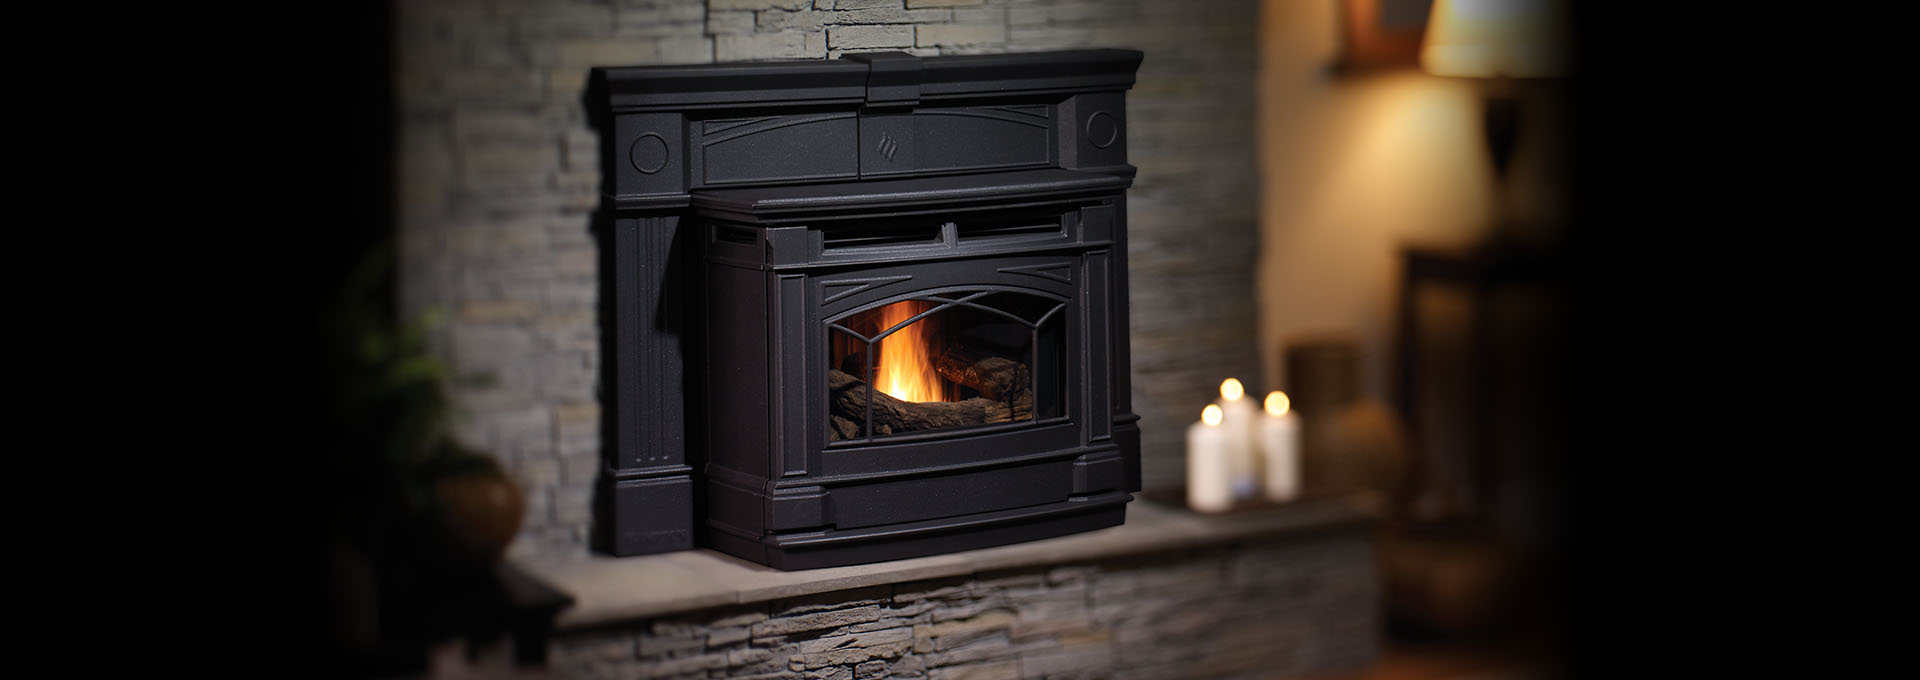 Propane Fireplace Repair Near Me Regency Fireplace Products Gas Wood Fireplaces Inserts Stoves